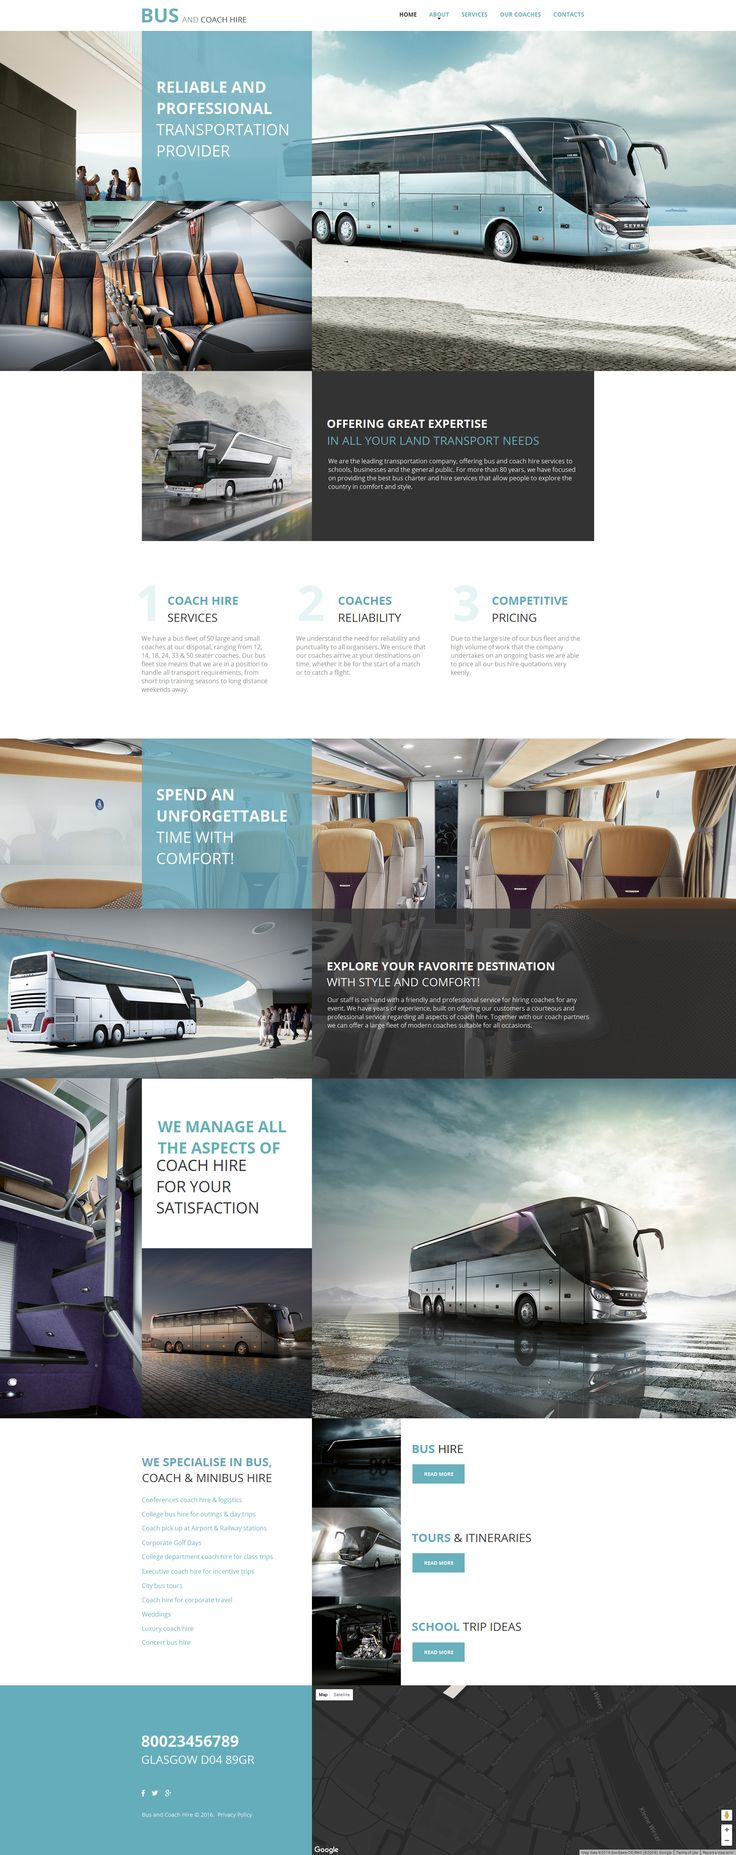 Transportation Moto CMS HTML Template #58743 http://www.templatemonster.com/moto-cms-html-templates/transportation-moto-cms-html-template-58743.html